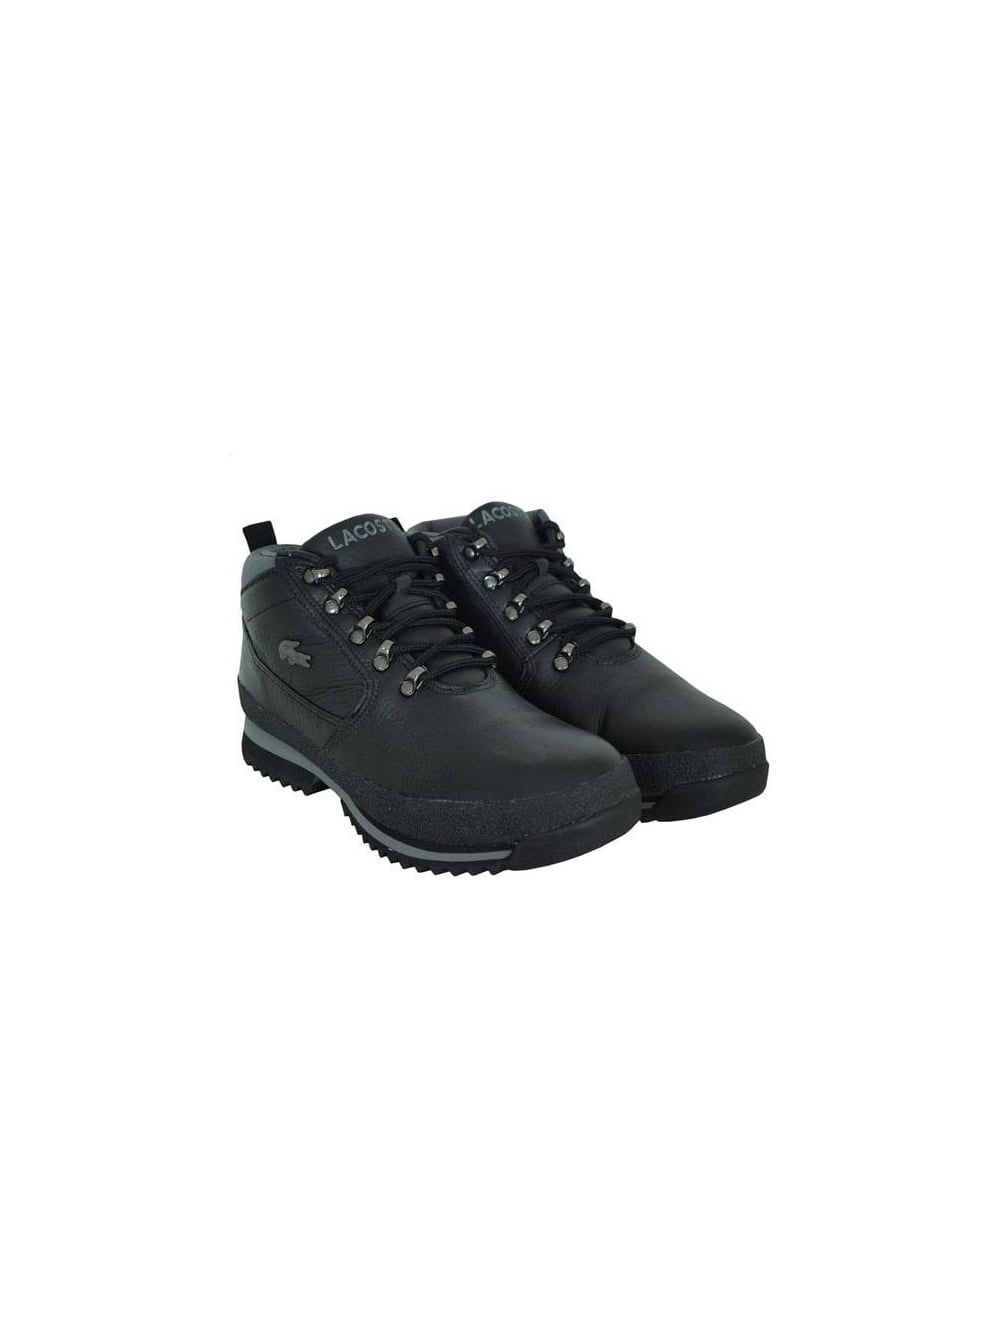 lacoste upton boots price - 56% OFF